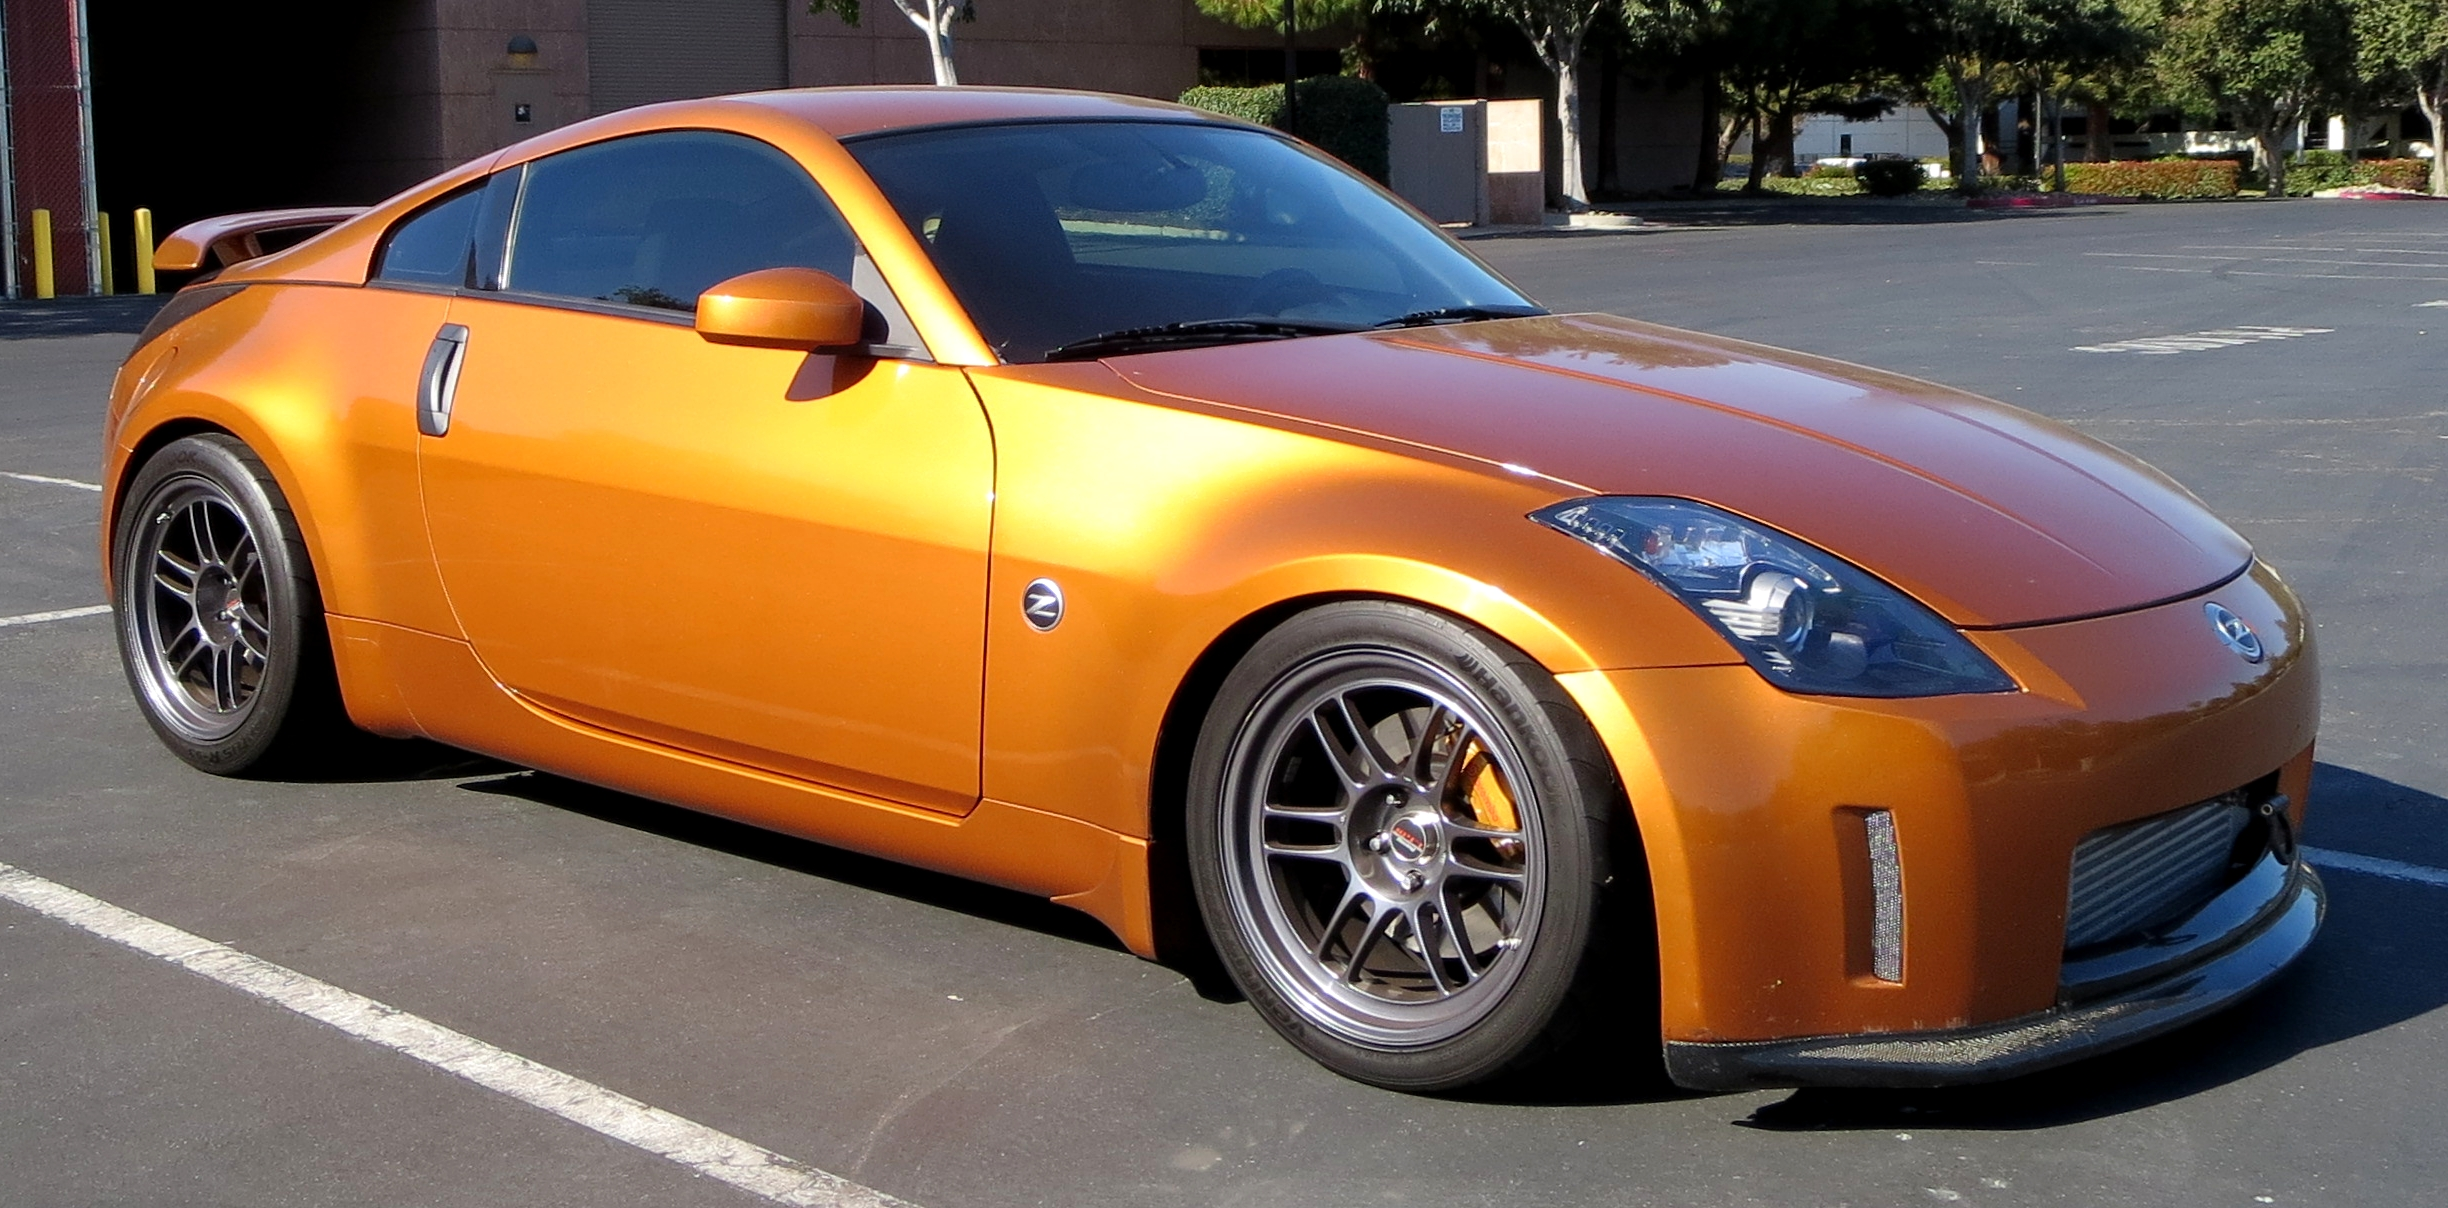 Steve B S 2003 Nissan 350z Is For Zcg Built Tuned And Maintained It Ready To Be Enjoyed On The Street Track More Information Visit Our